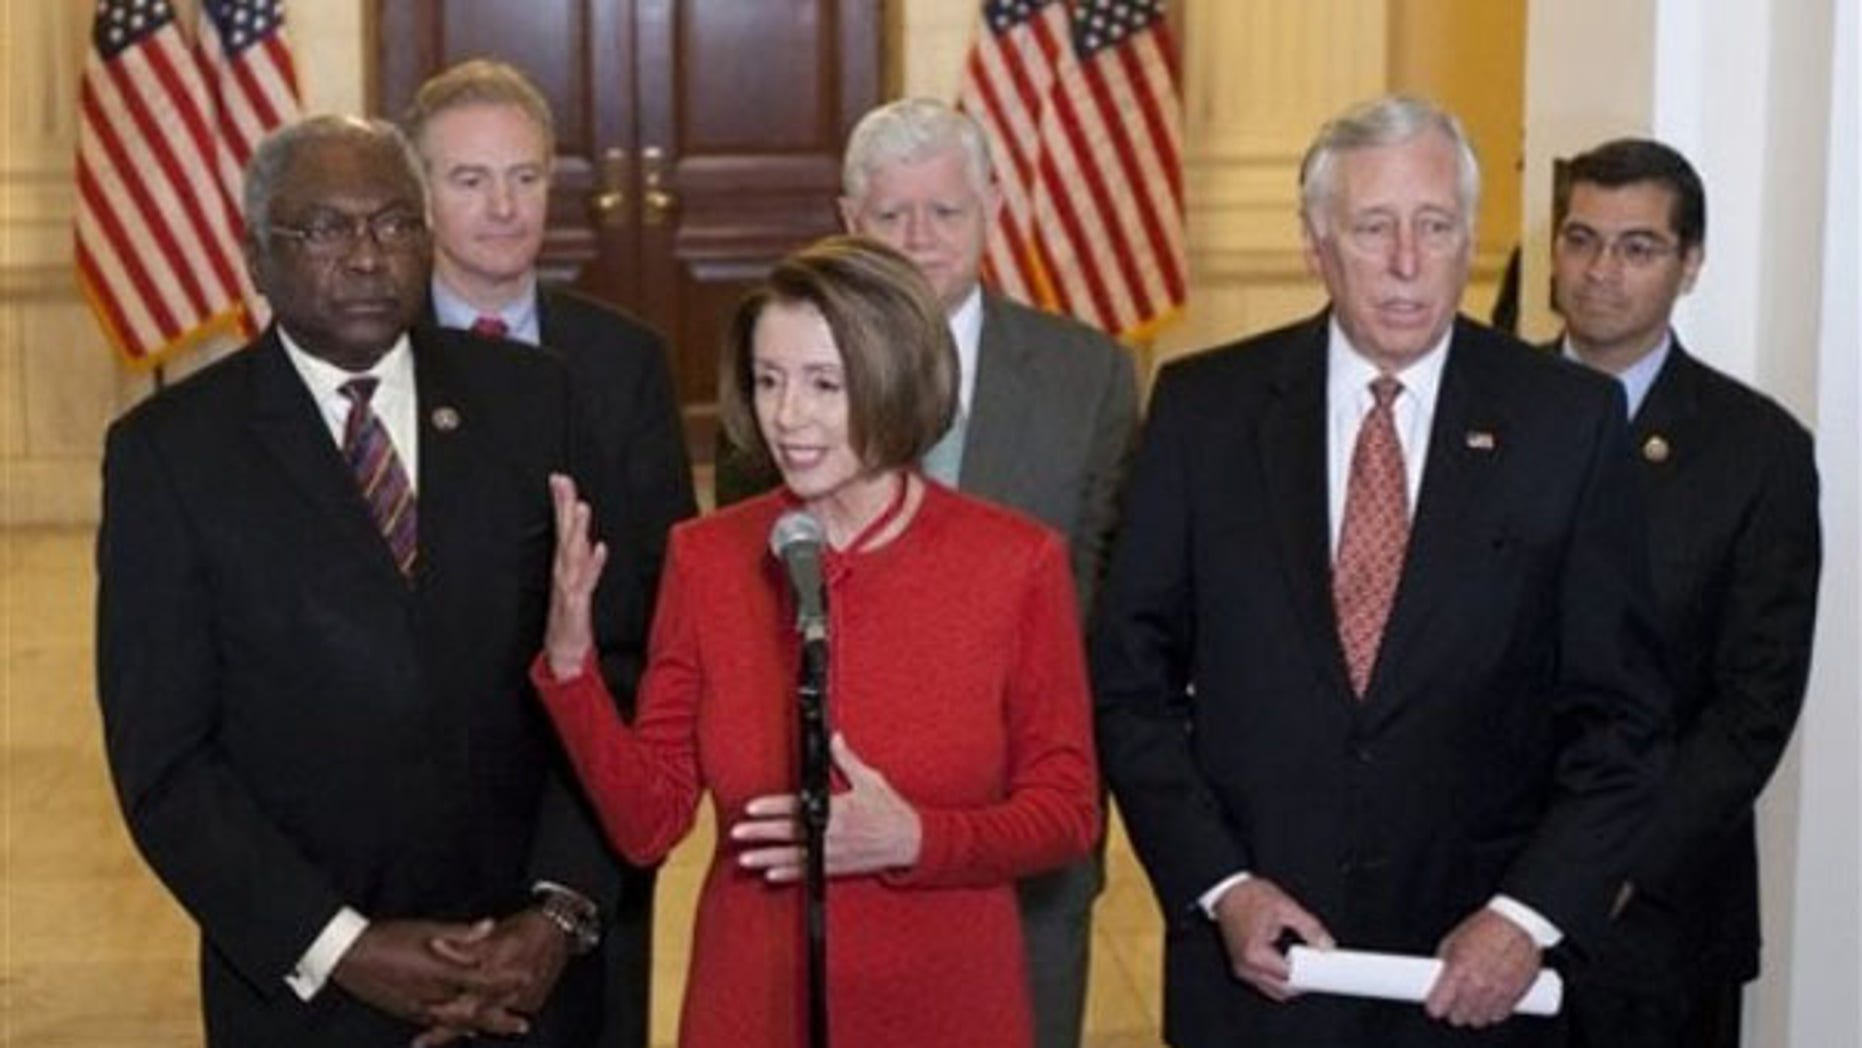 Democratic leaders, Speaker Nancy Pelosi, Majority Whip James Clyburn and Rep. Steny Hoyer, seen here in November, are working to limit losses of Democratic seats in the 2010 election, but recognize the historic challenges. In the back are Rep. Chris Van Hollen, Rep. John Larson and Rep. Xavier Becerra (AP Photo).